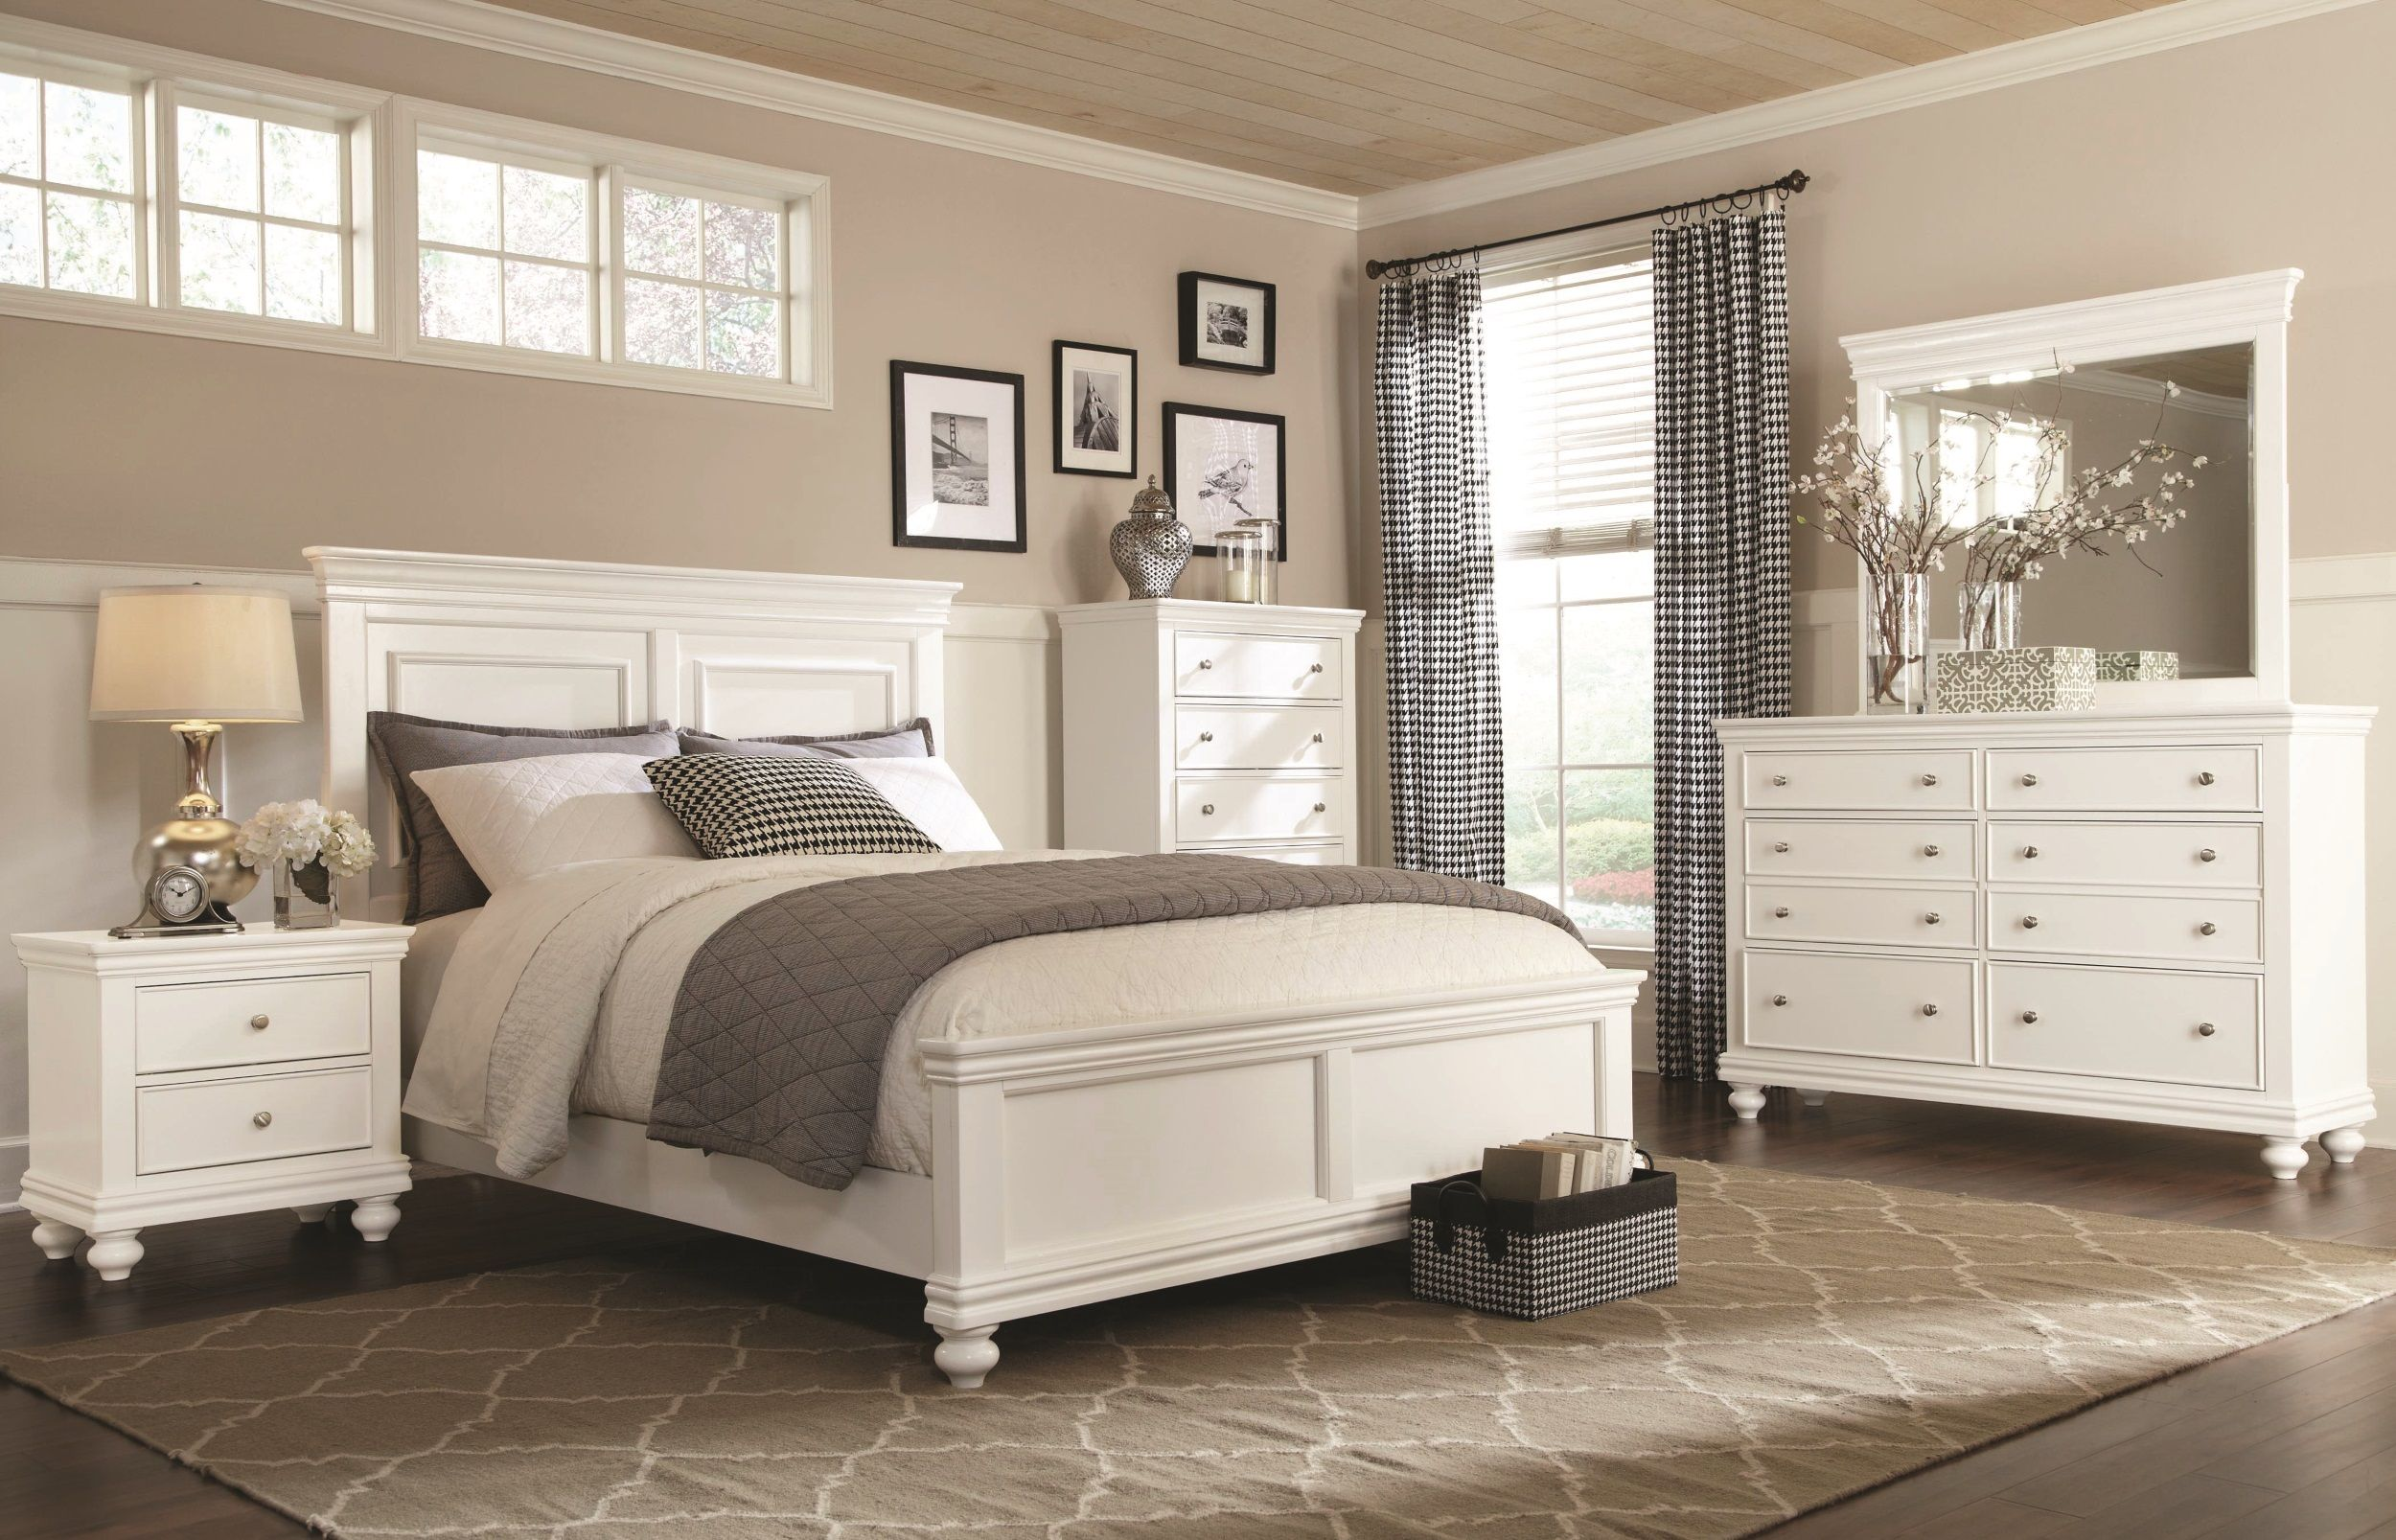 What Do You Think Of White Bedroom Sets Love Em Or Furniture Homedecor